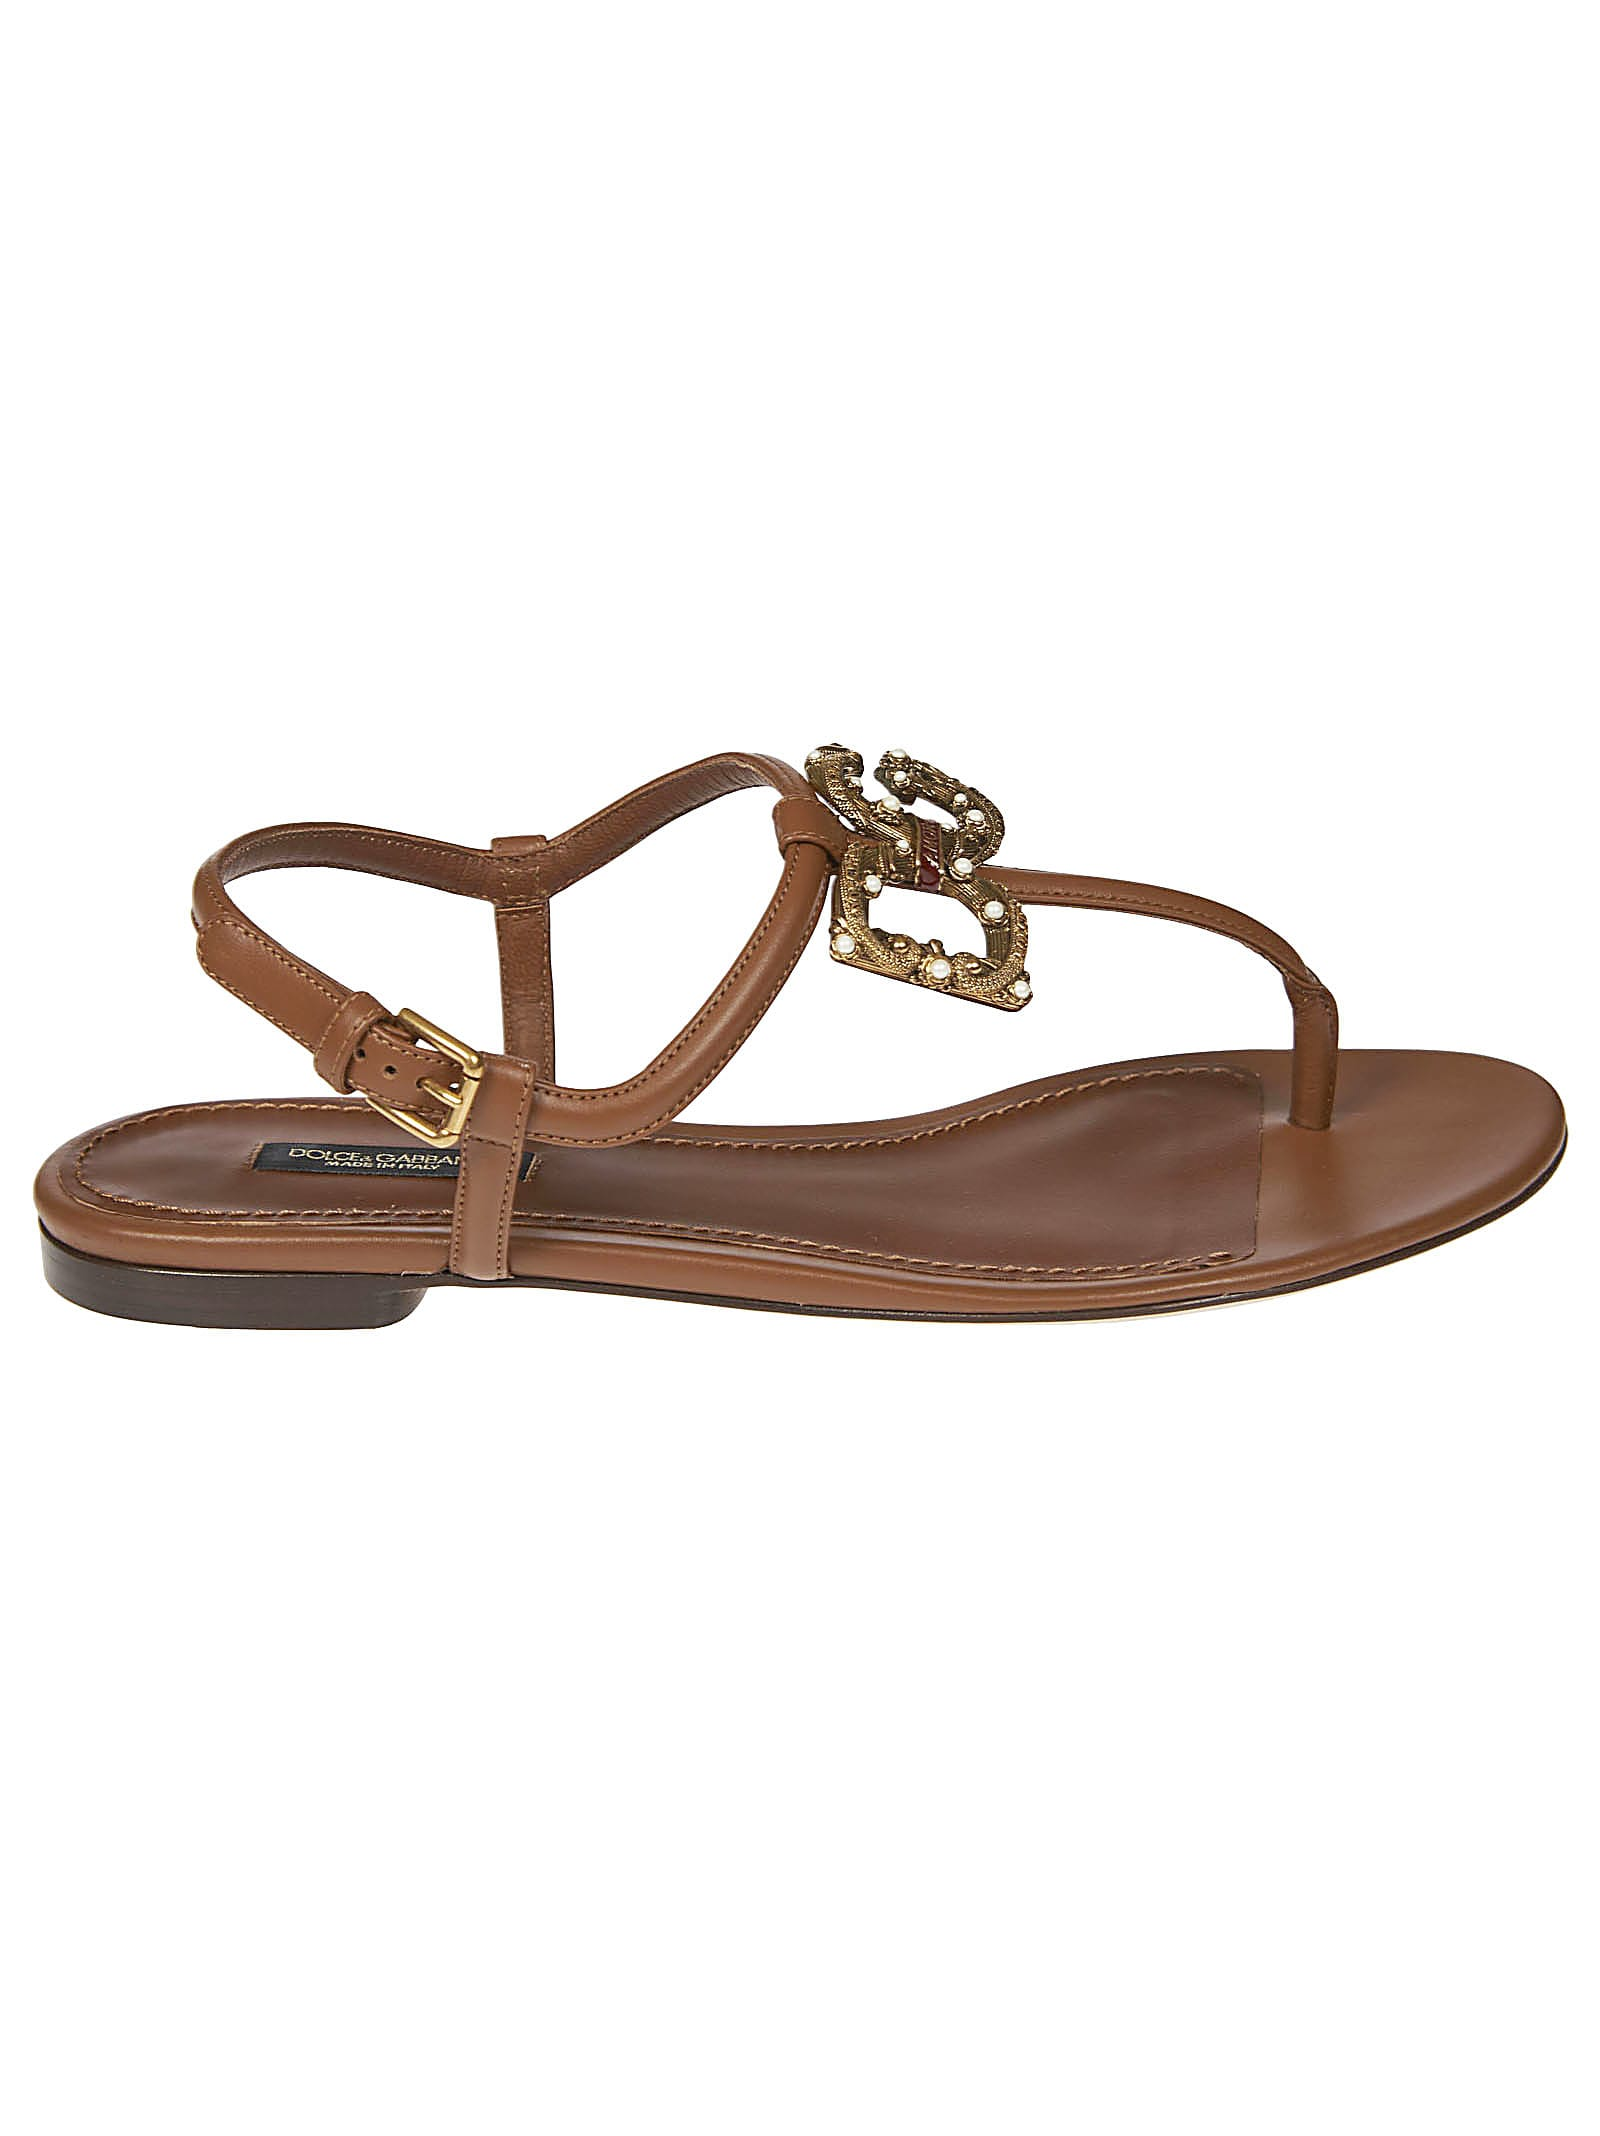 Buy Dolce & Gabbana Logo Embellished Sandals online, shop Dolce & Gabbana shoes with free shipping